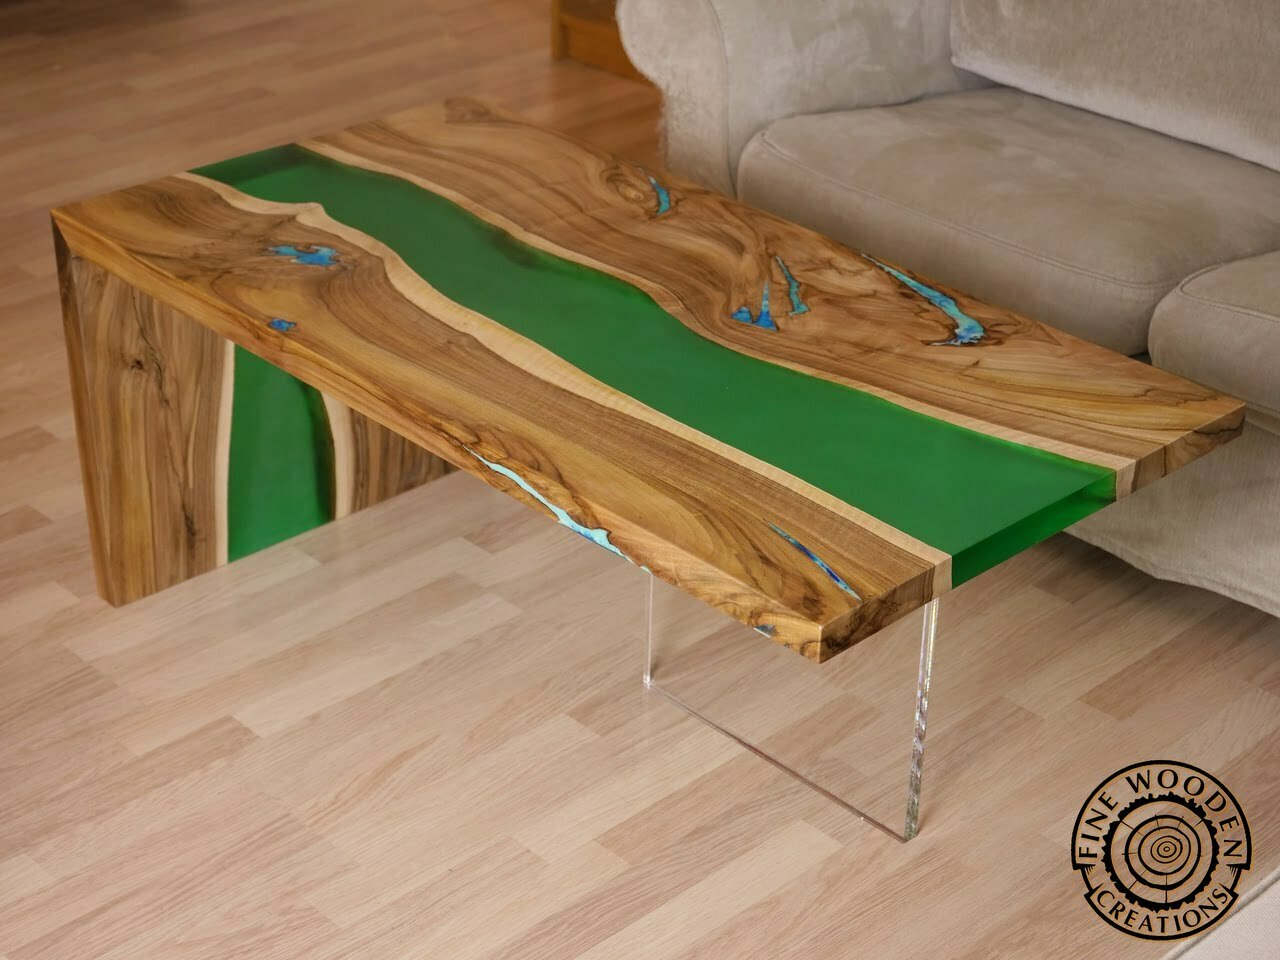 Live Edge Quot Green Waterfall Quot River Coffee Table With